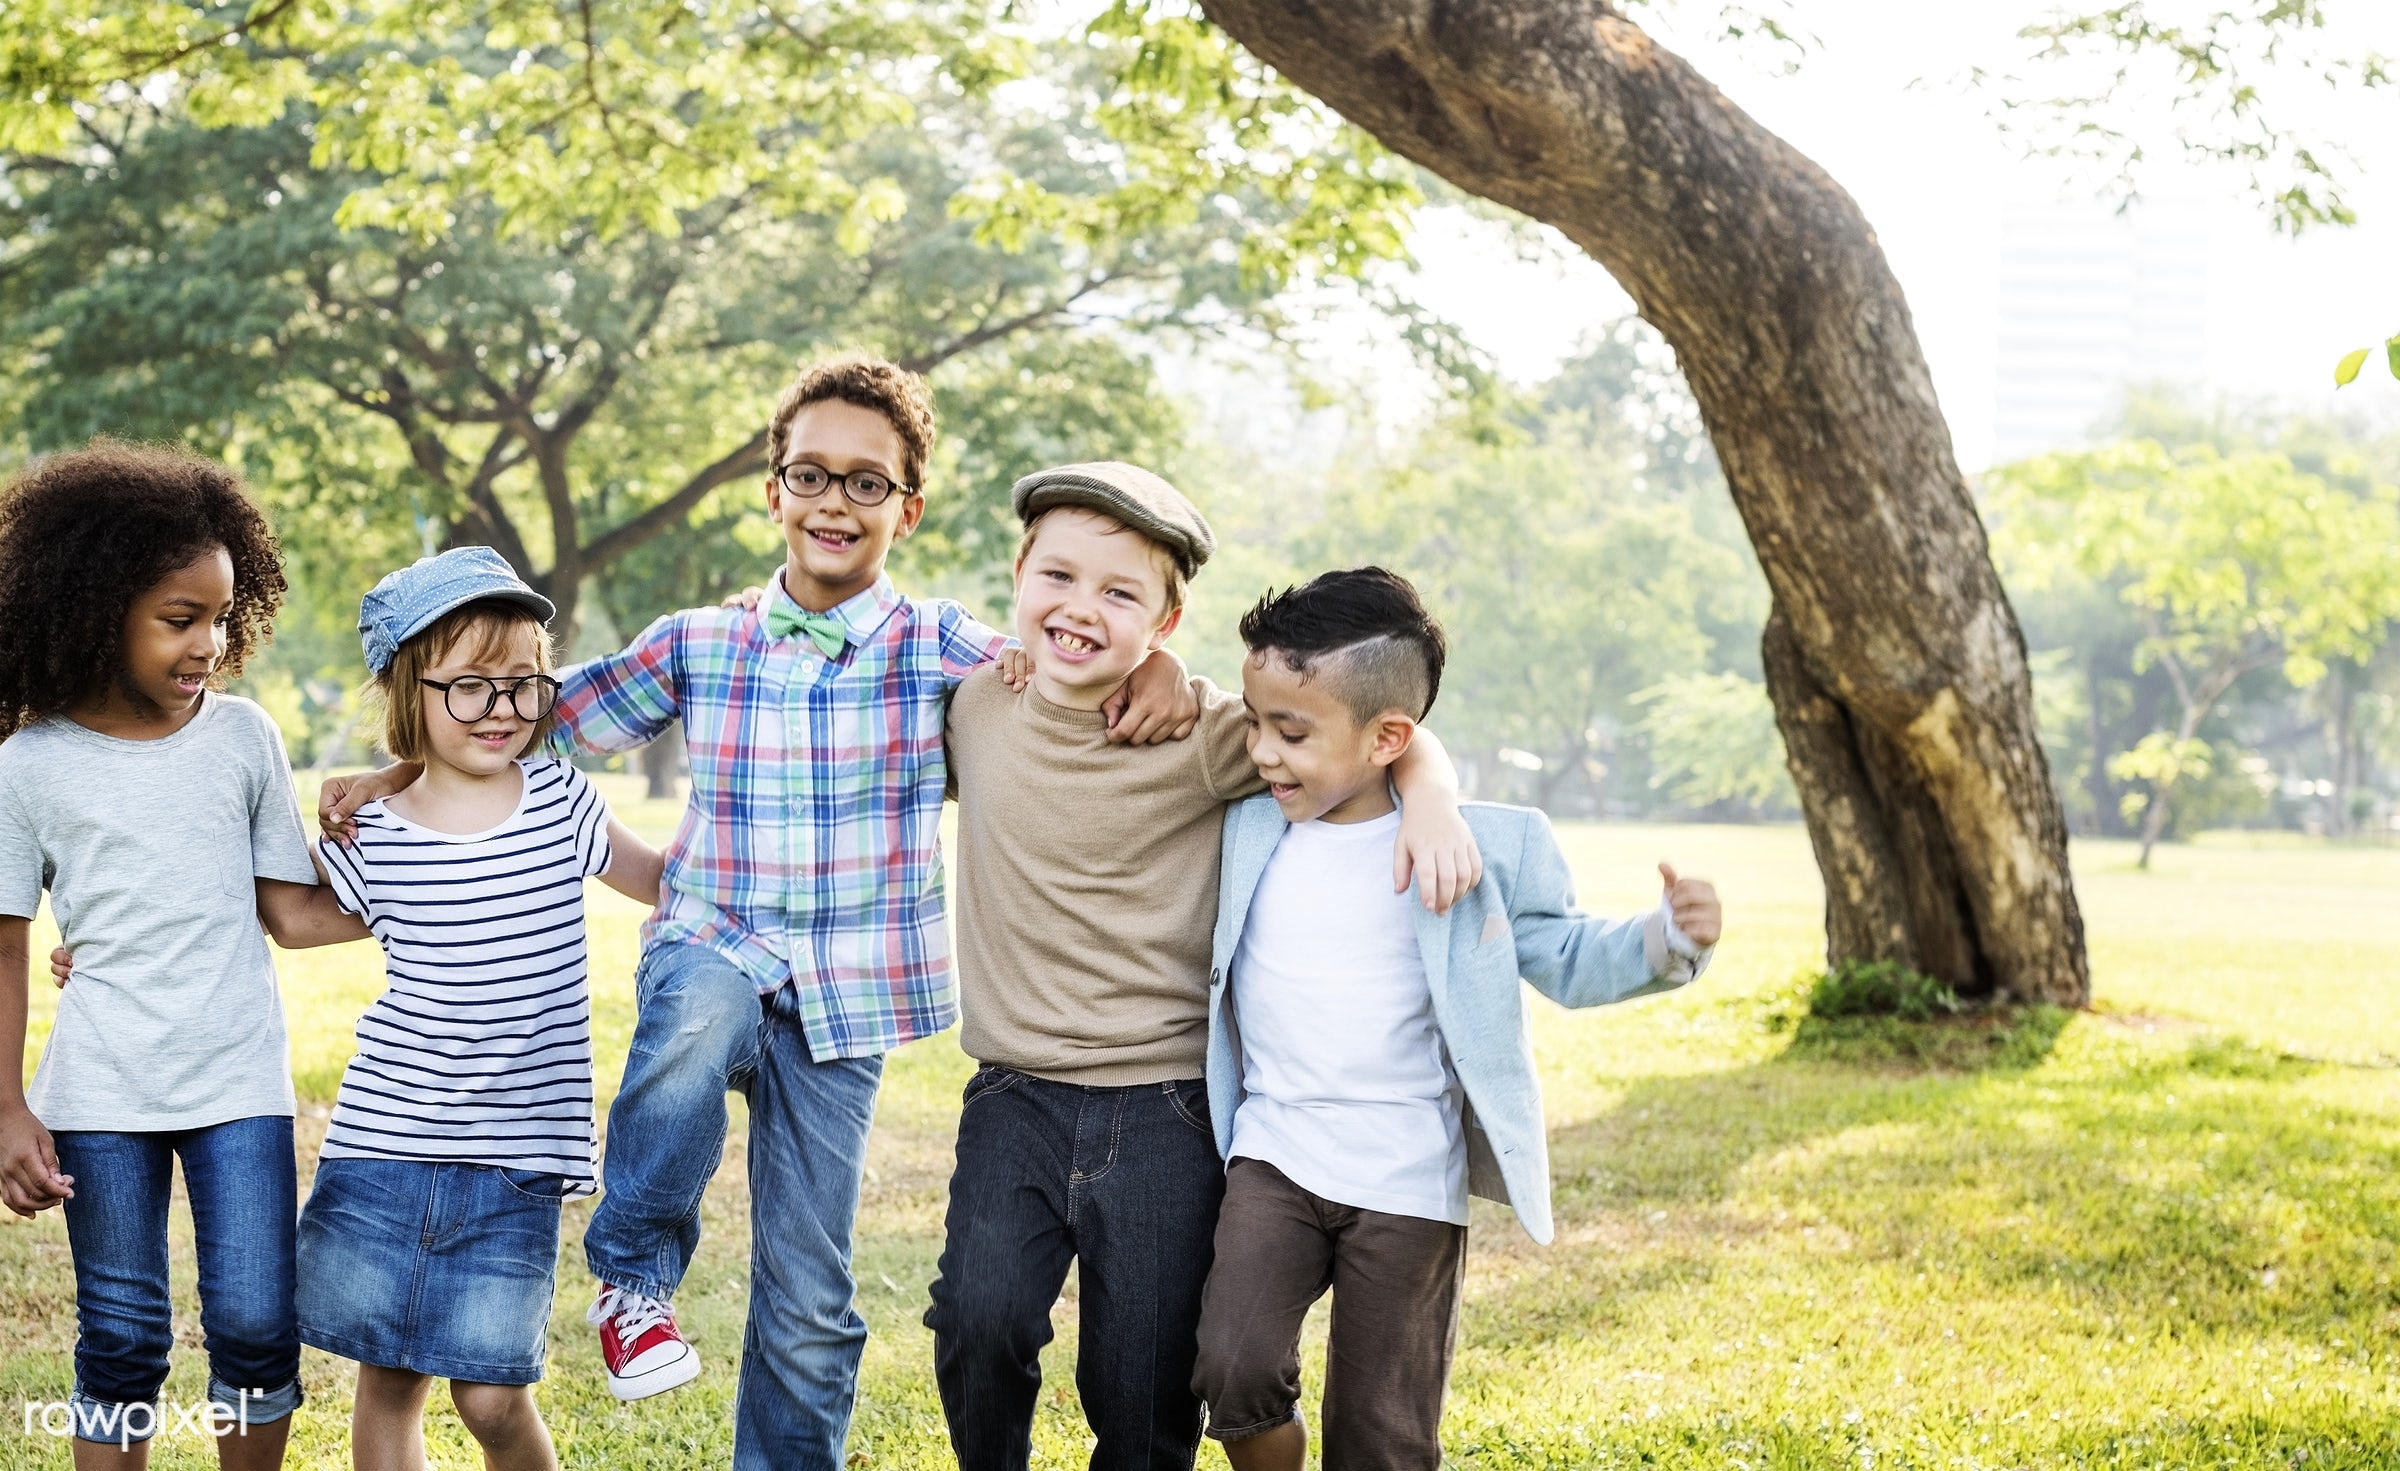 Happy kids in the park - activities, adorable, african descent, asian ethnicity, bonding, boys, cheerful, child, childhood,...